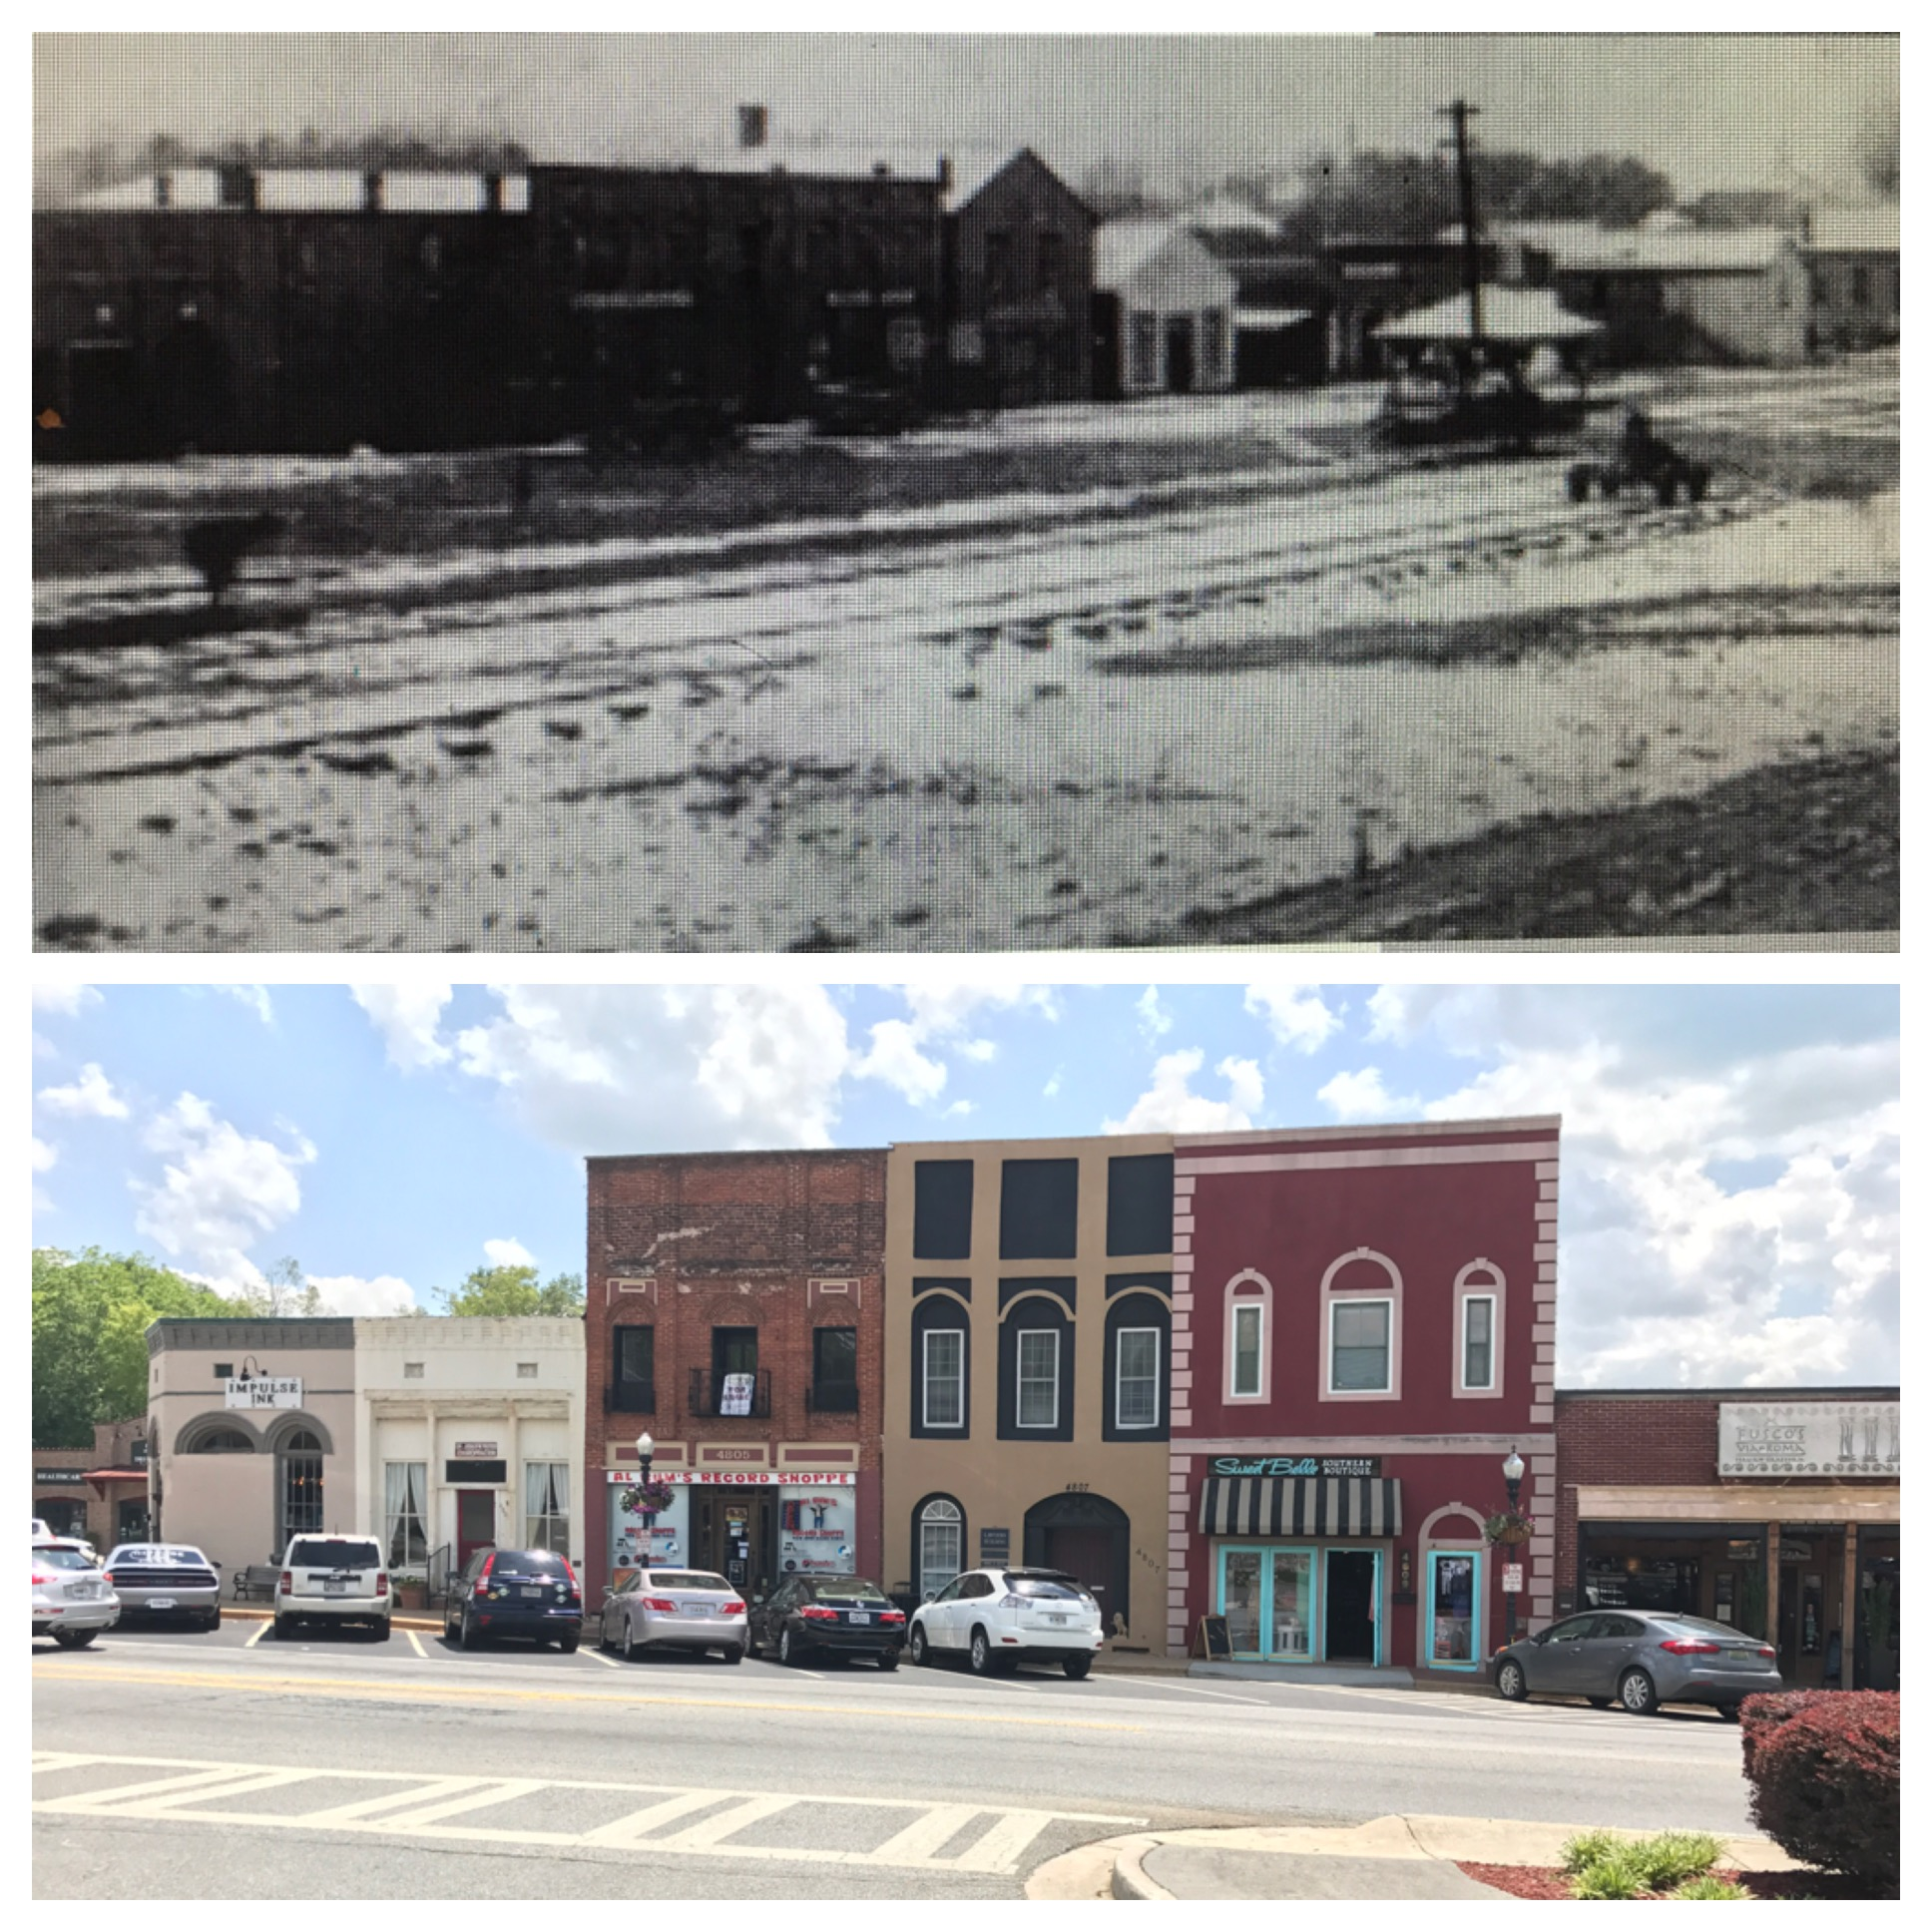 A comparison of an earlier photo taken along historic N. Main Street versus today.